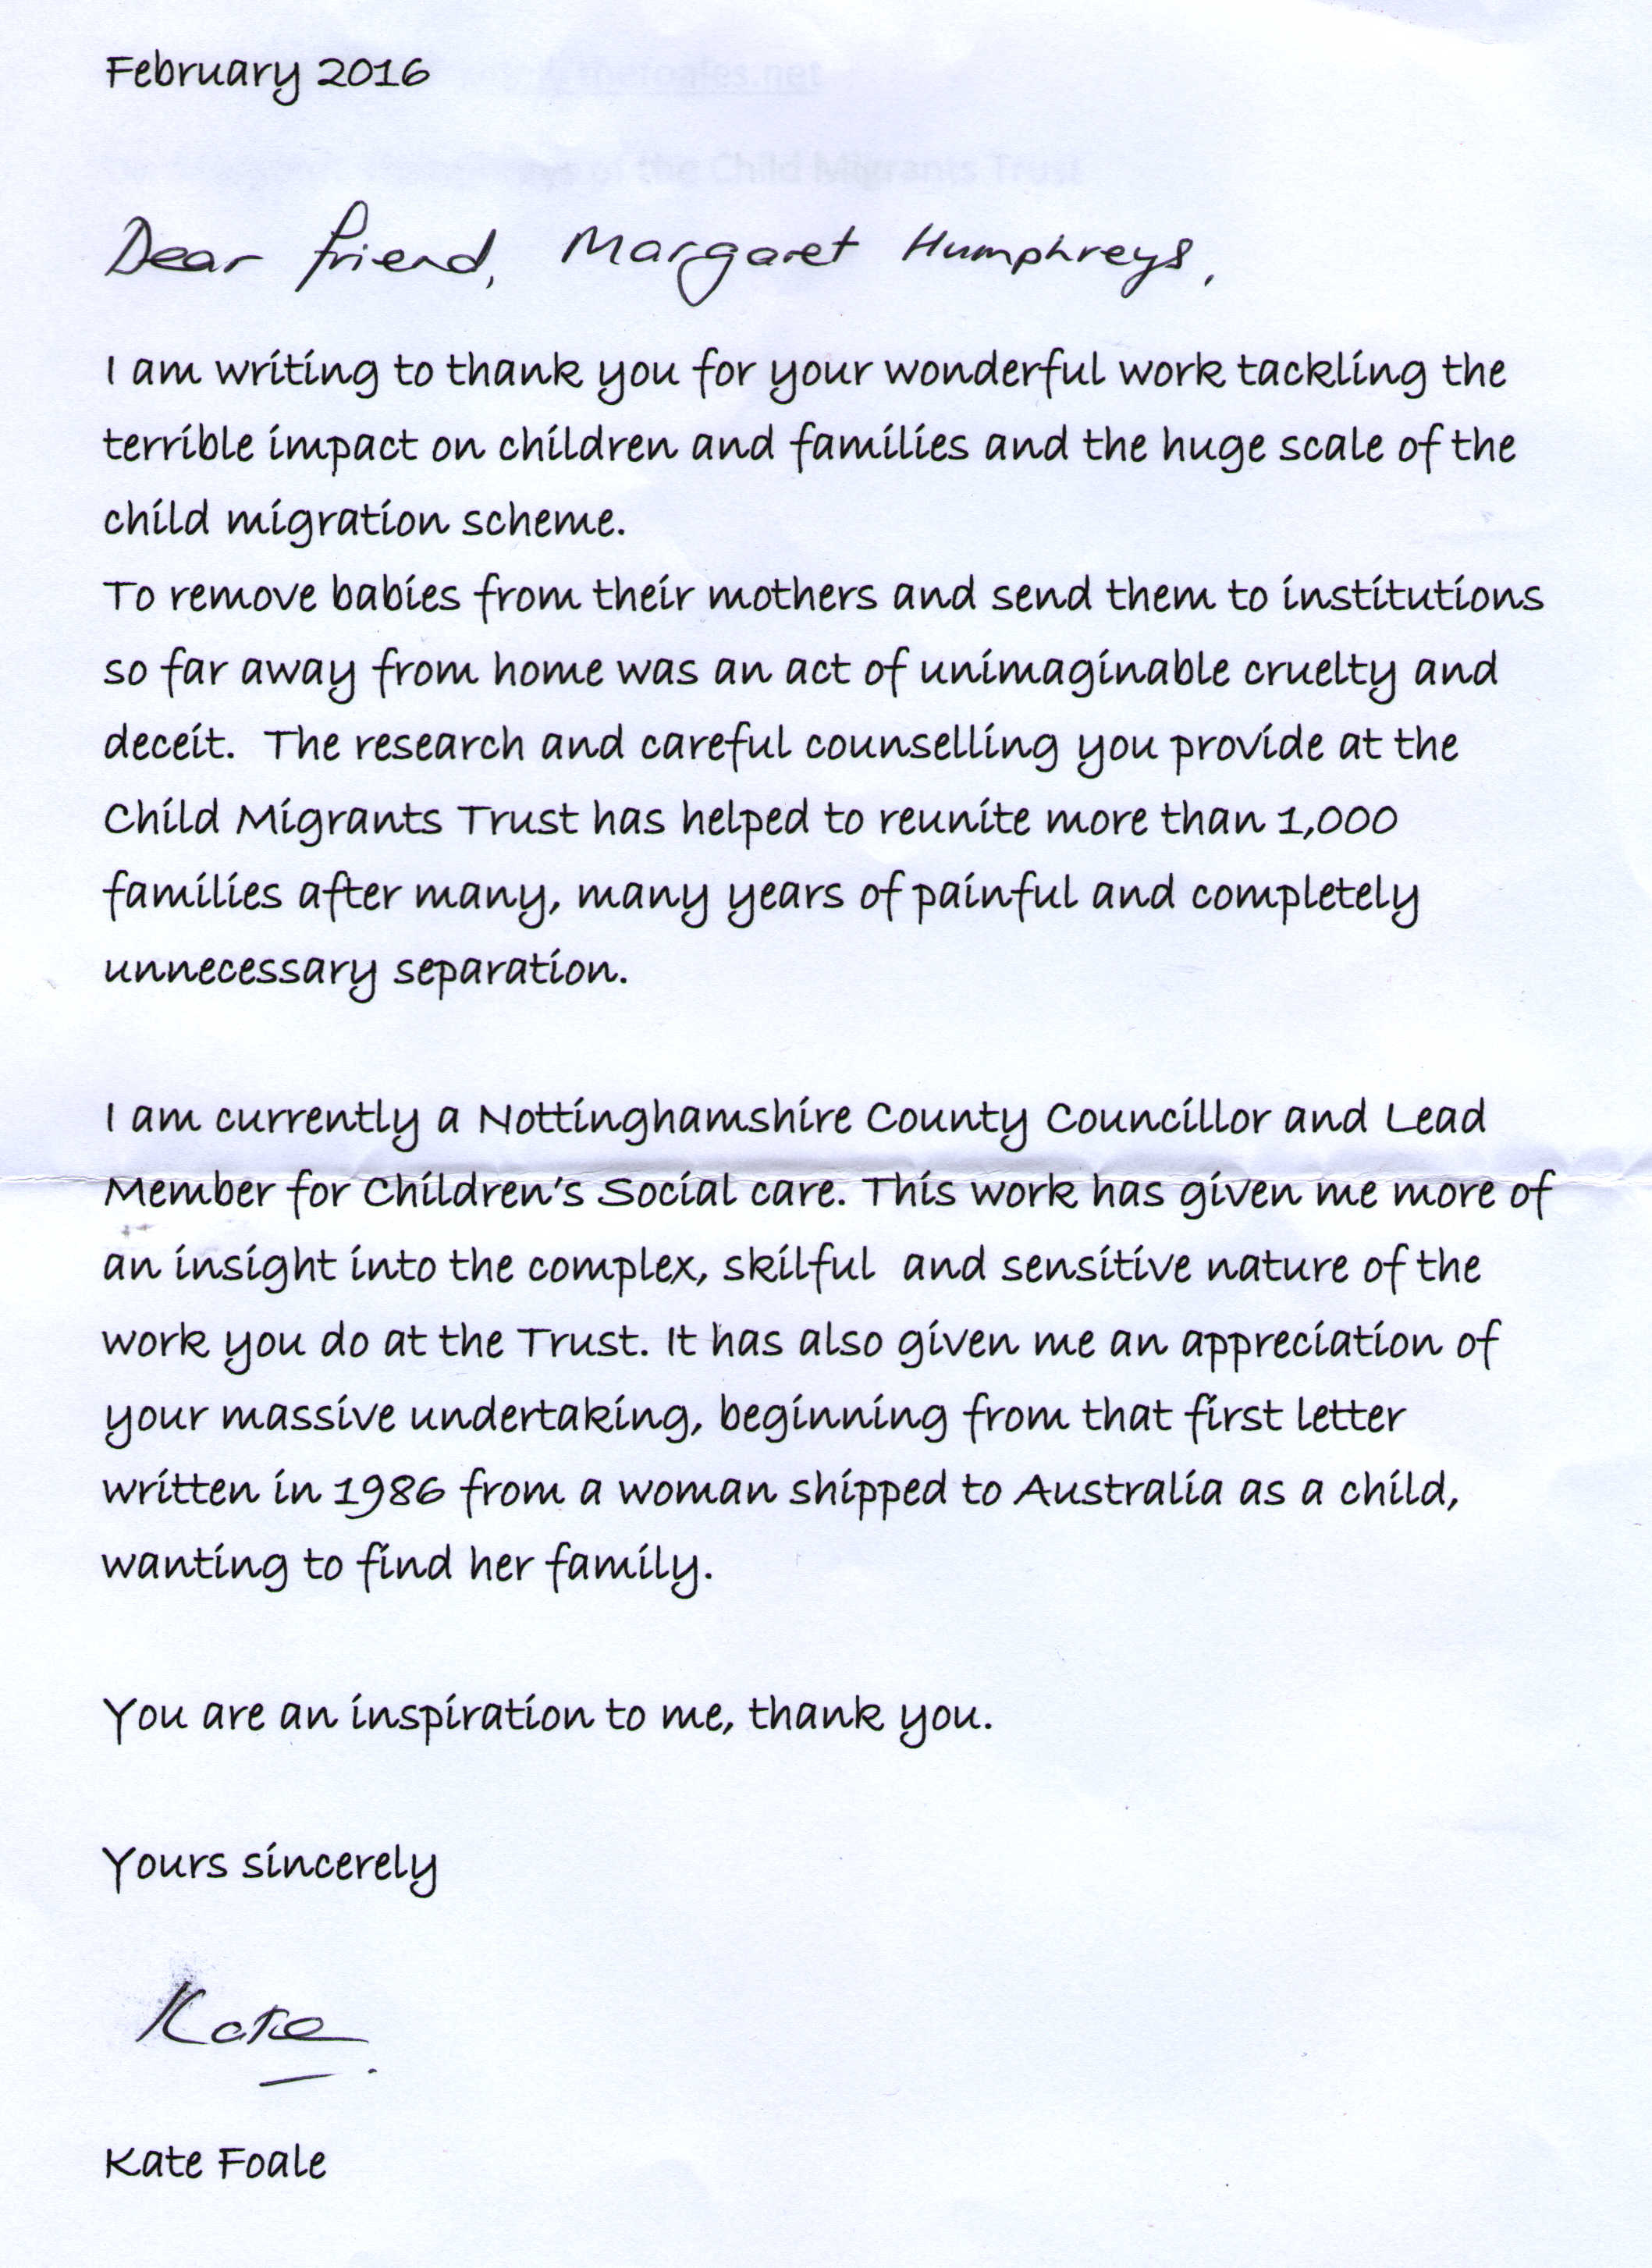 Scan Of The Letter